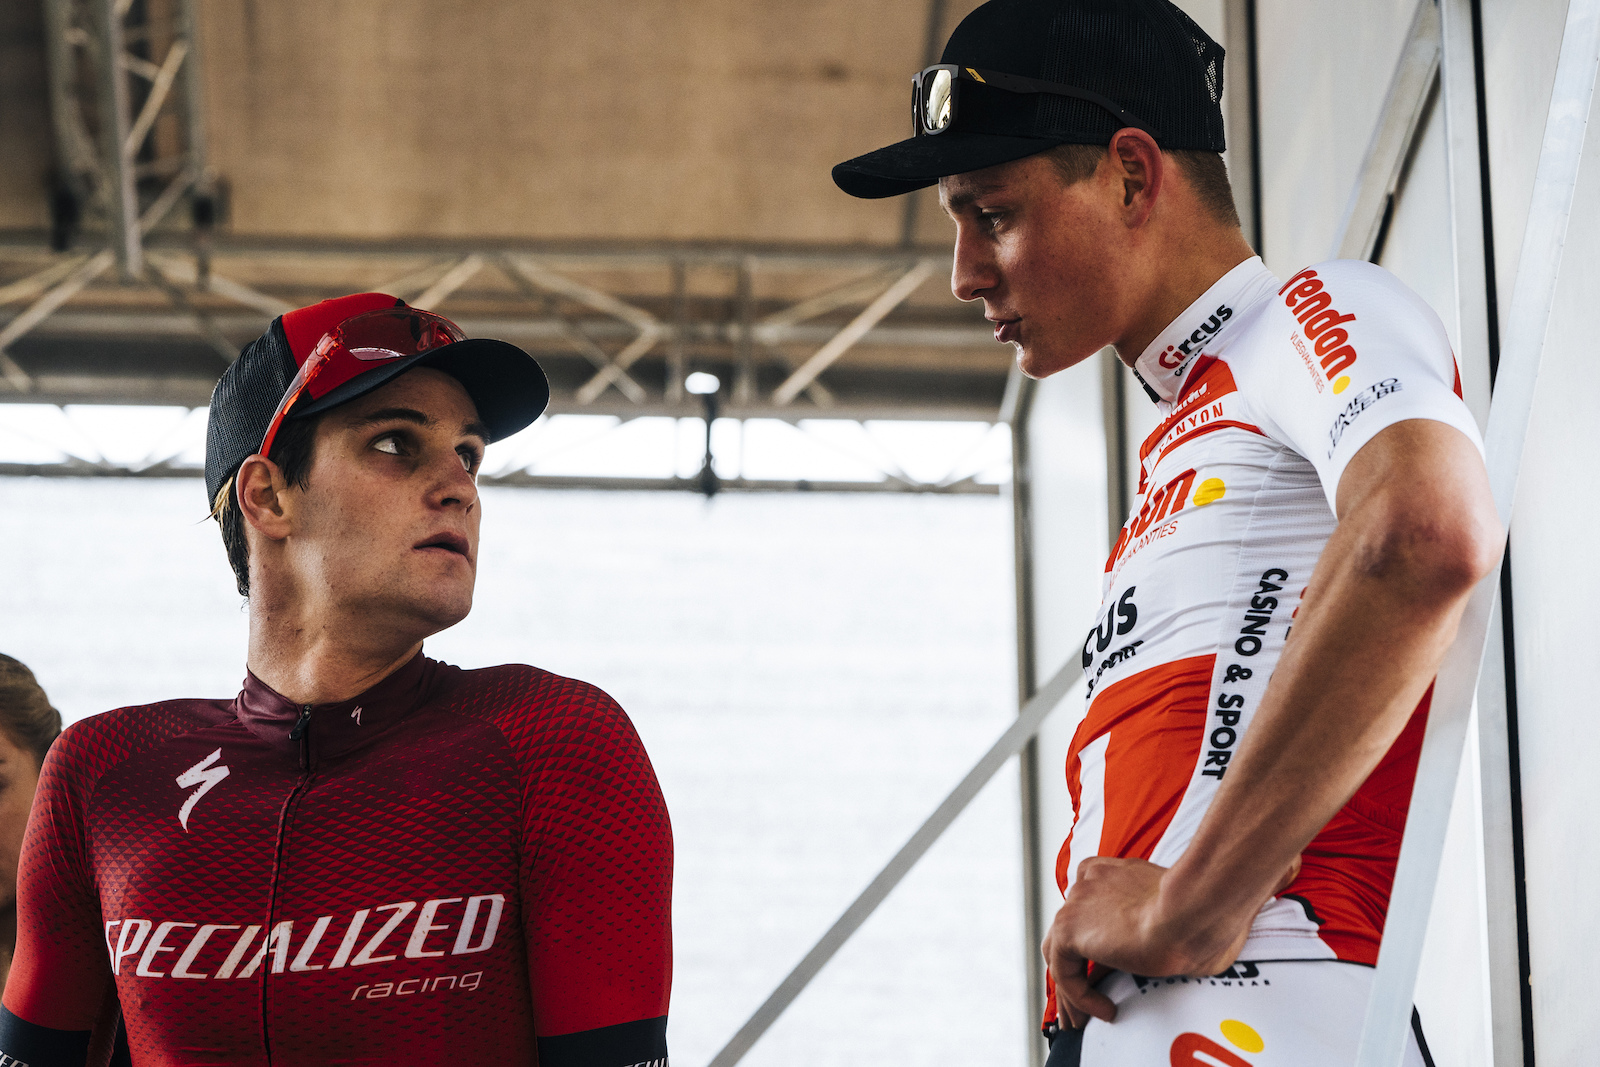 Gaze and van der Poel pre awards post beat down.